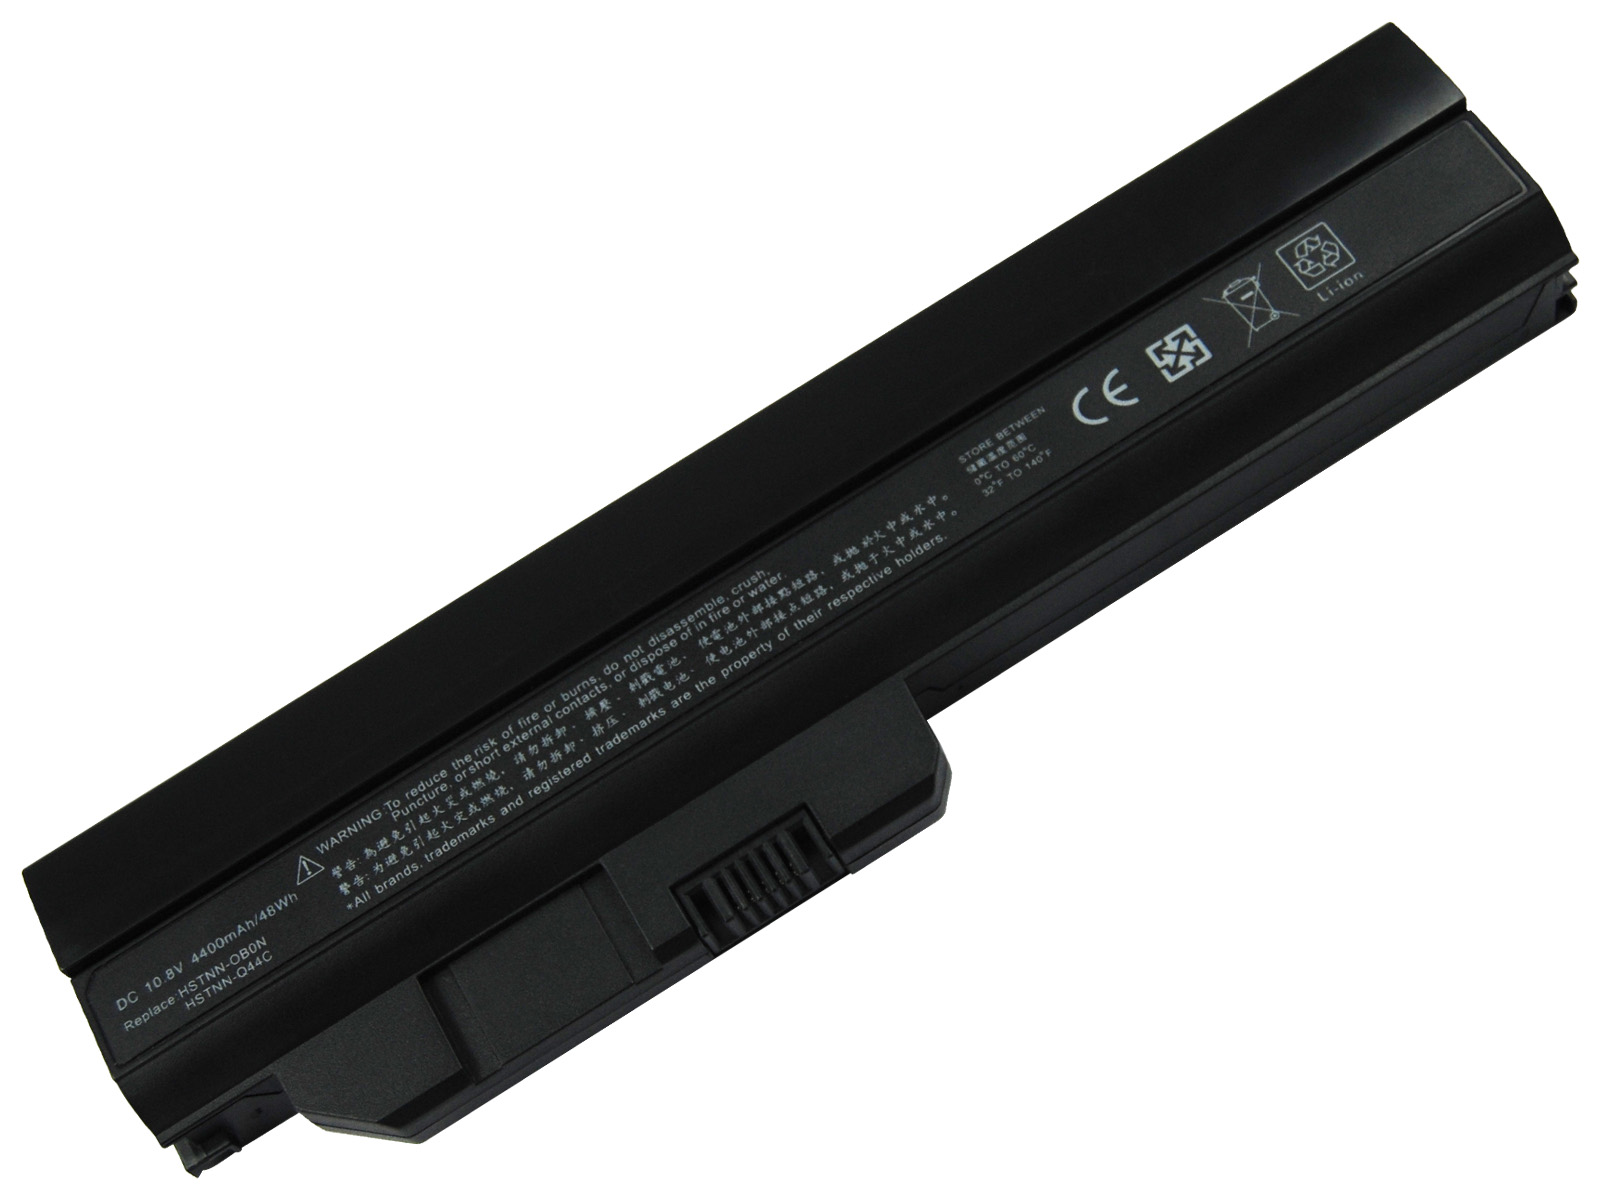 HP Pavilion dm1-1000 Laptop Battery